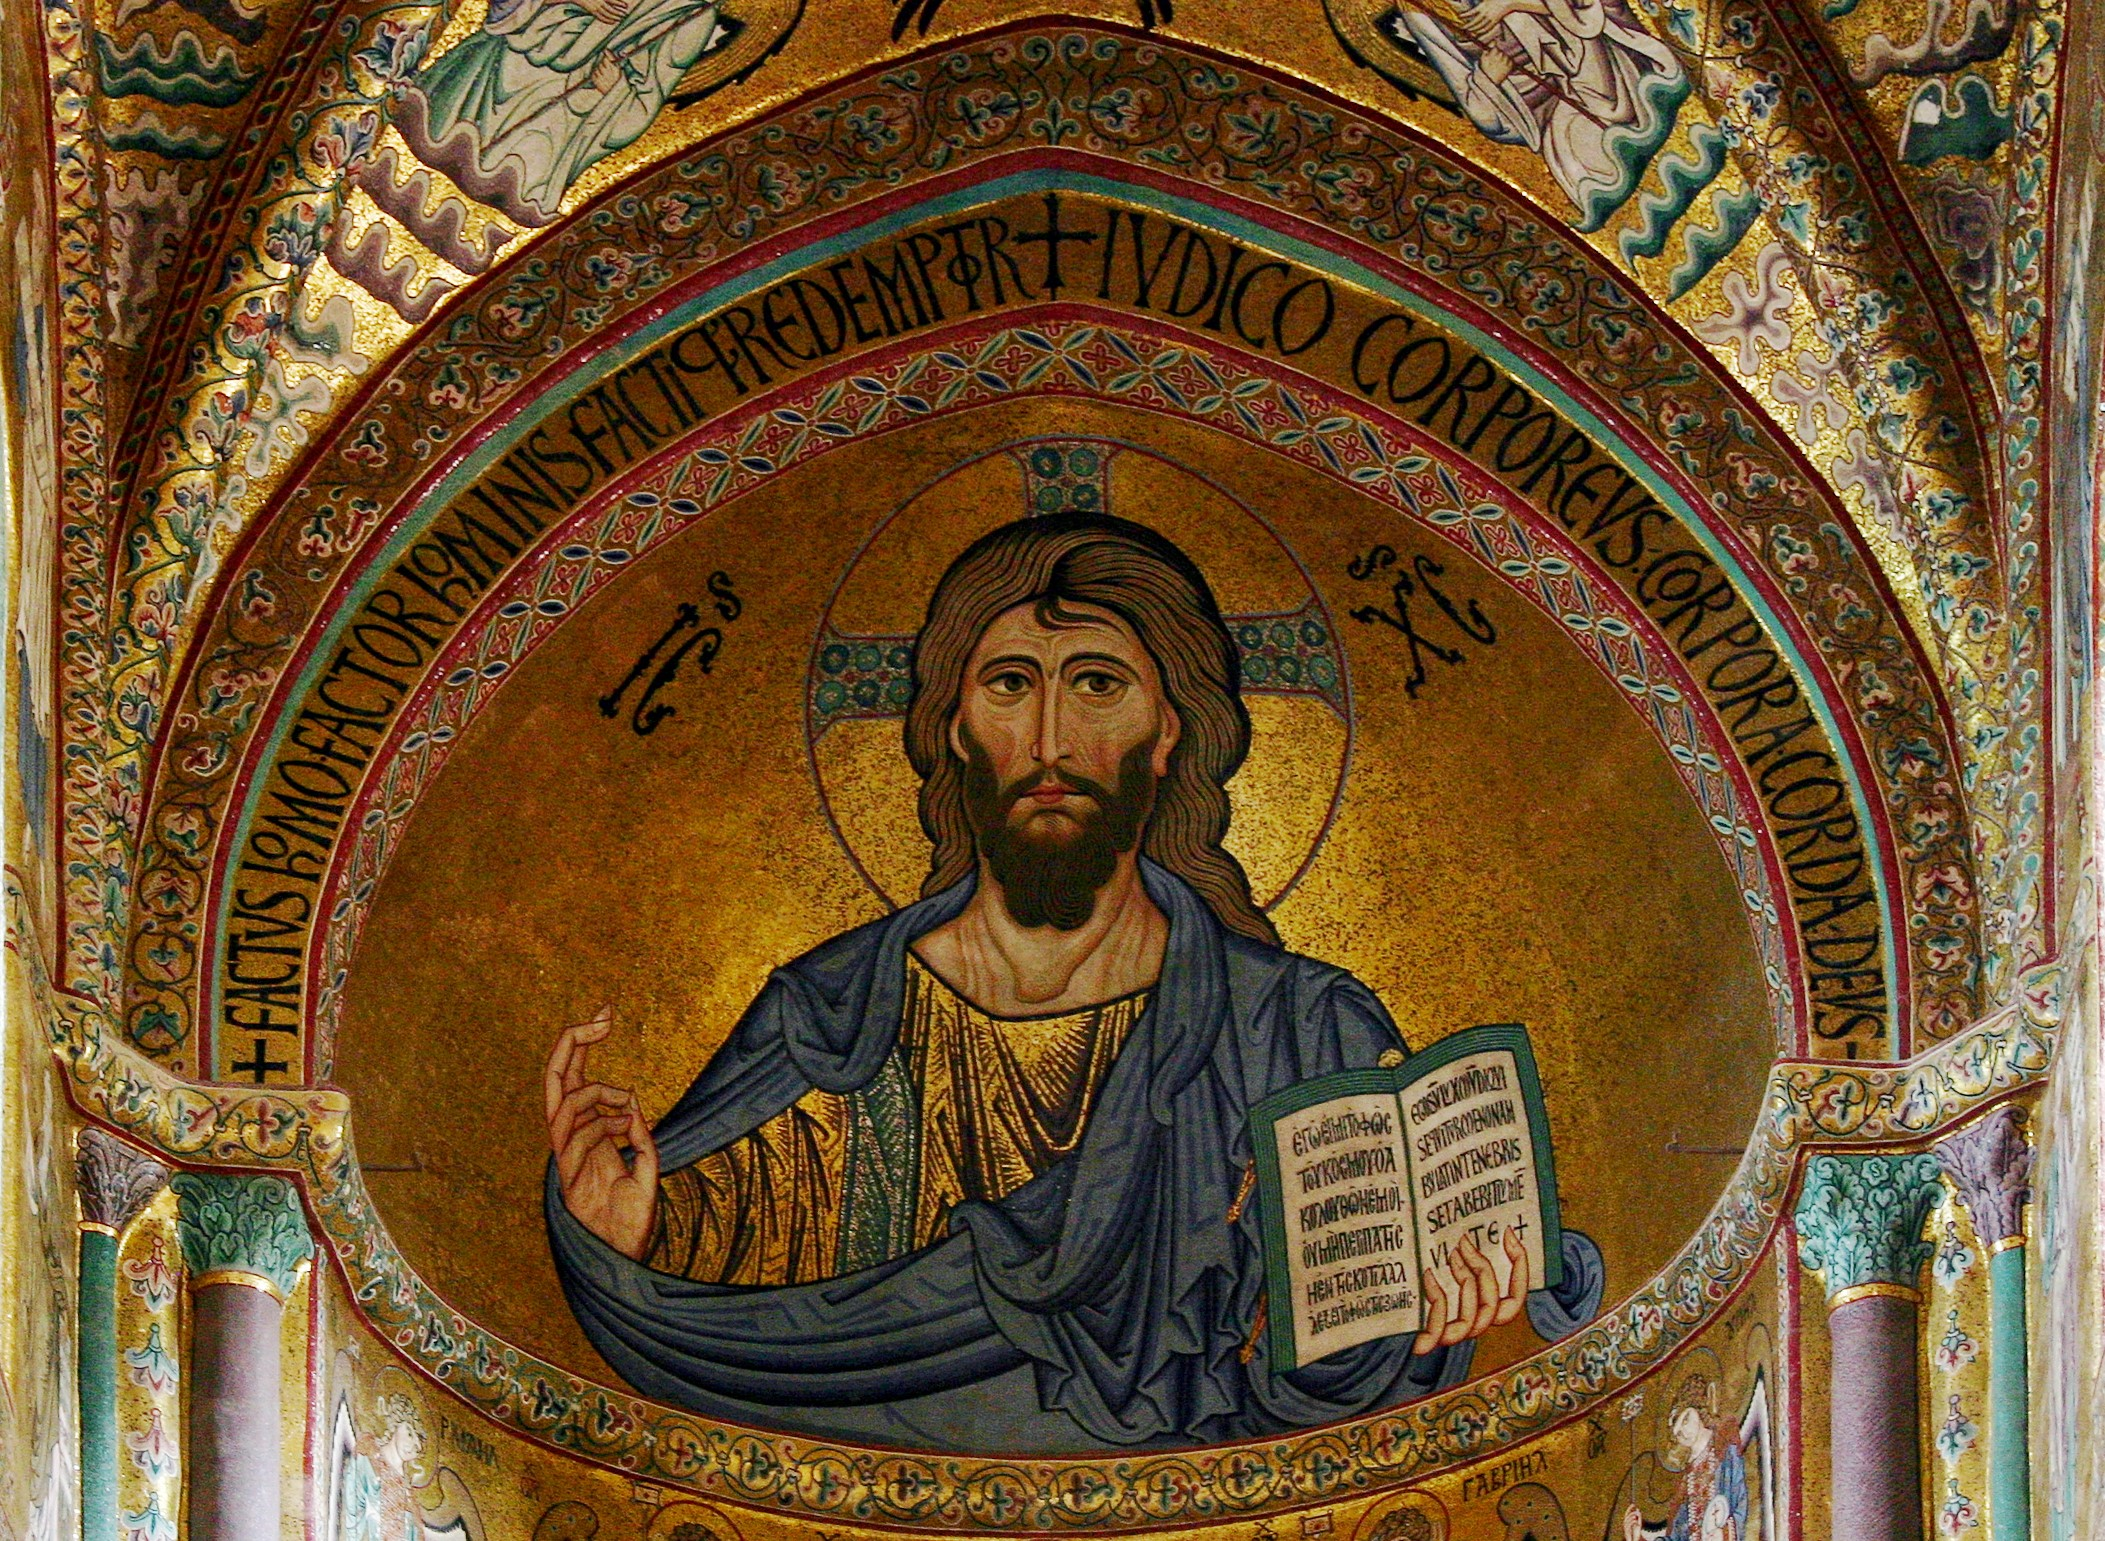 Christ_Pantocrator_-_Cathedral_of_Cefalù_-_Italy_2015_(crop)